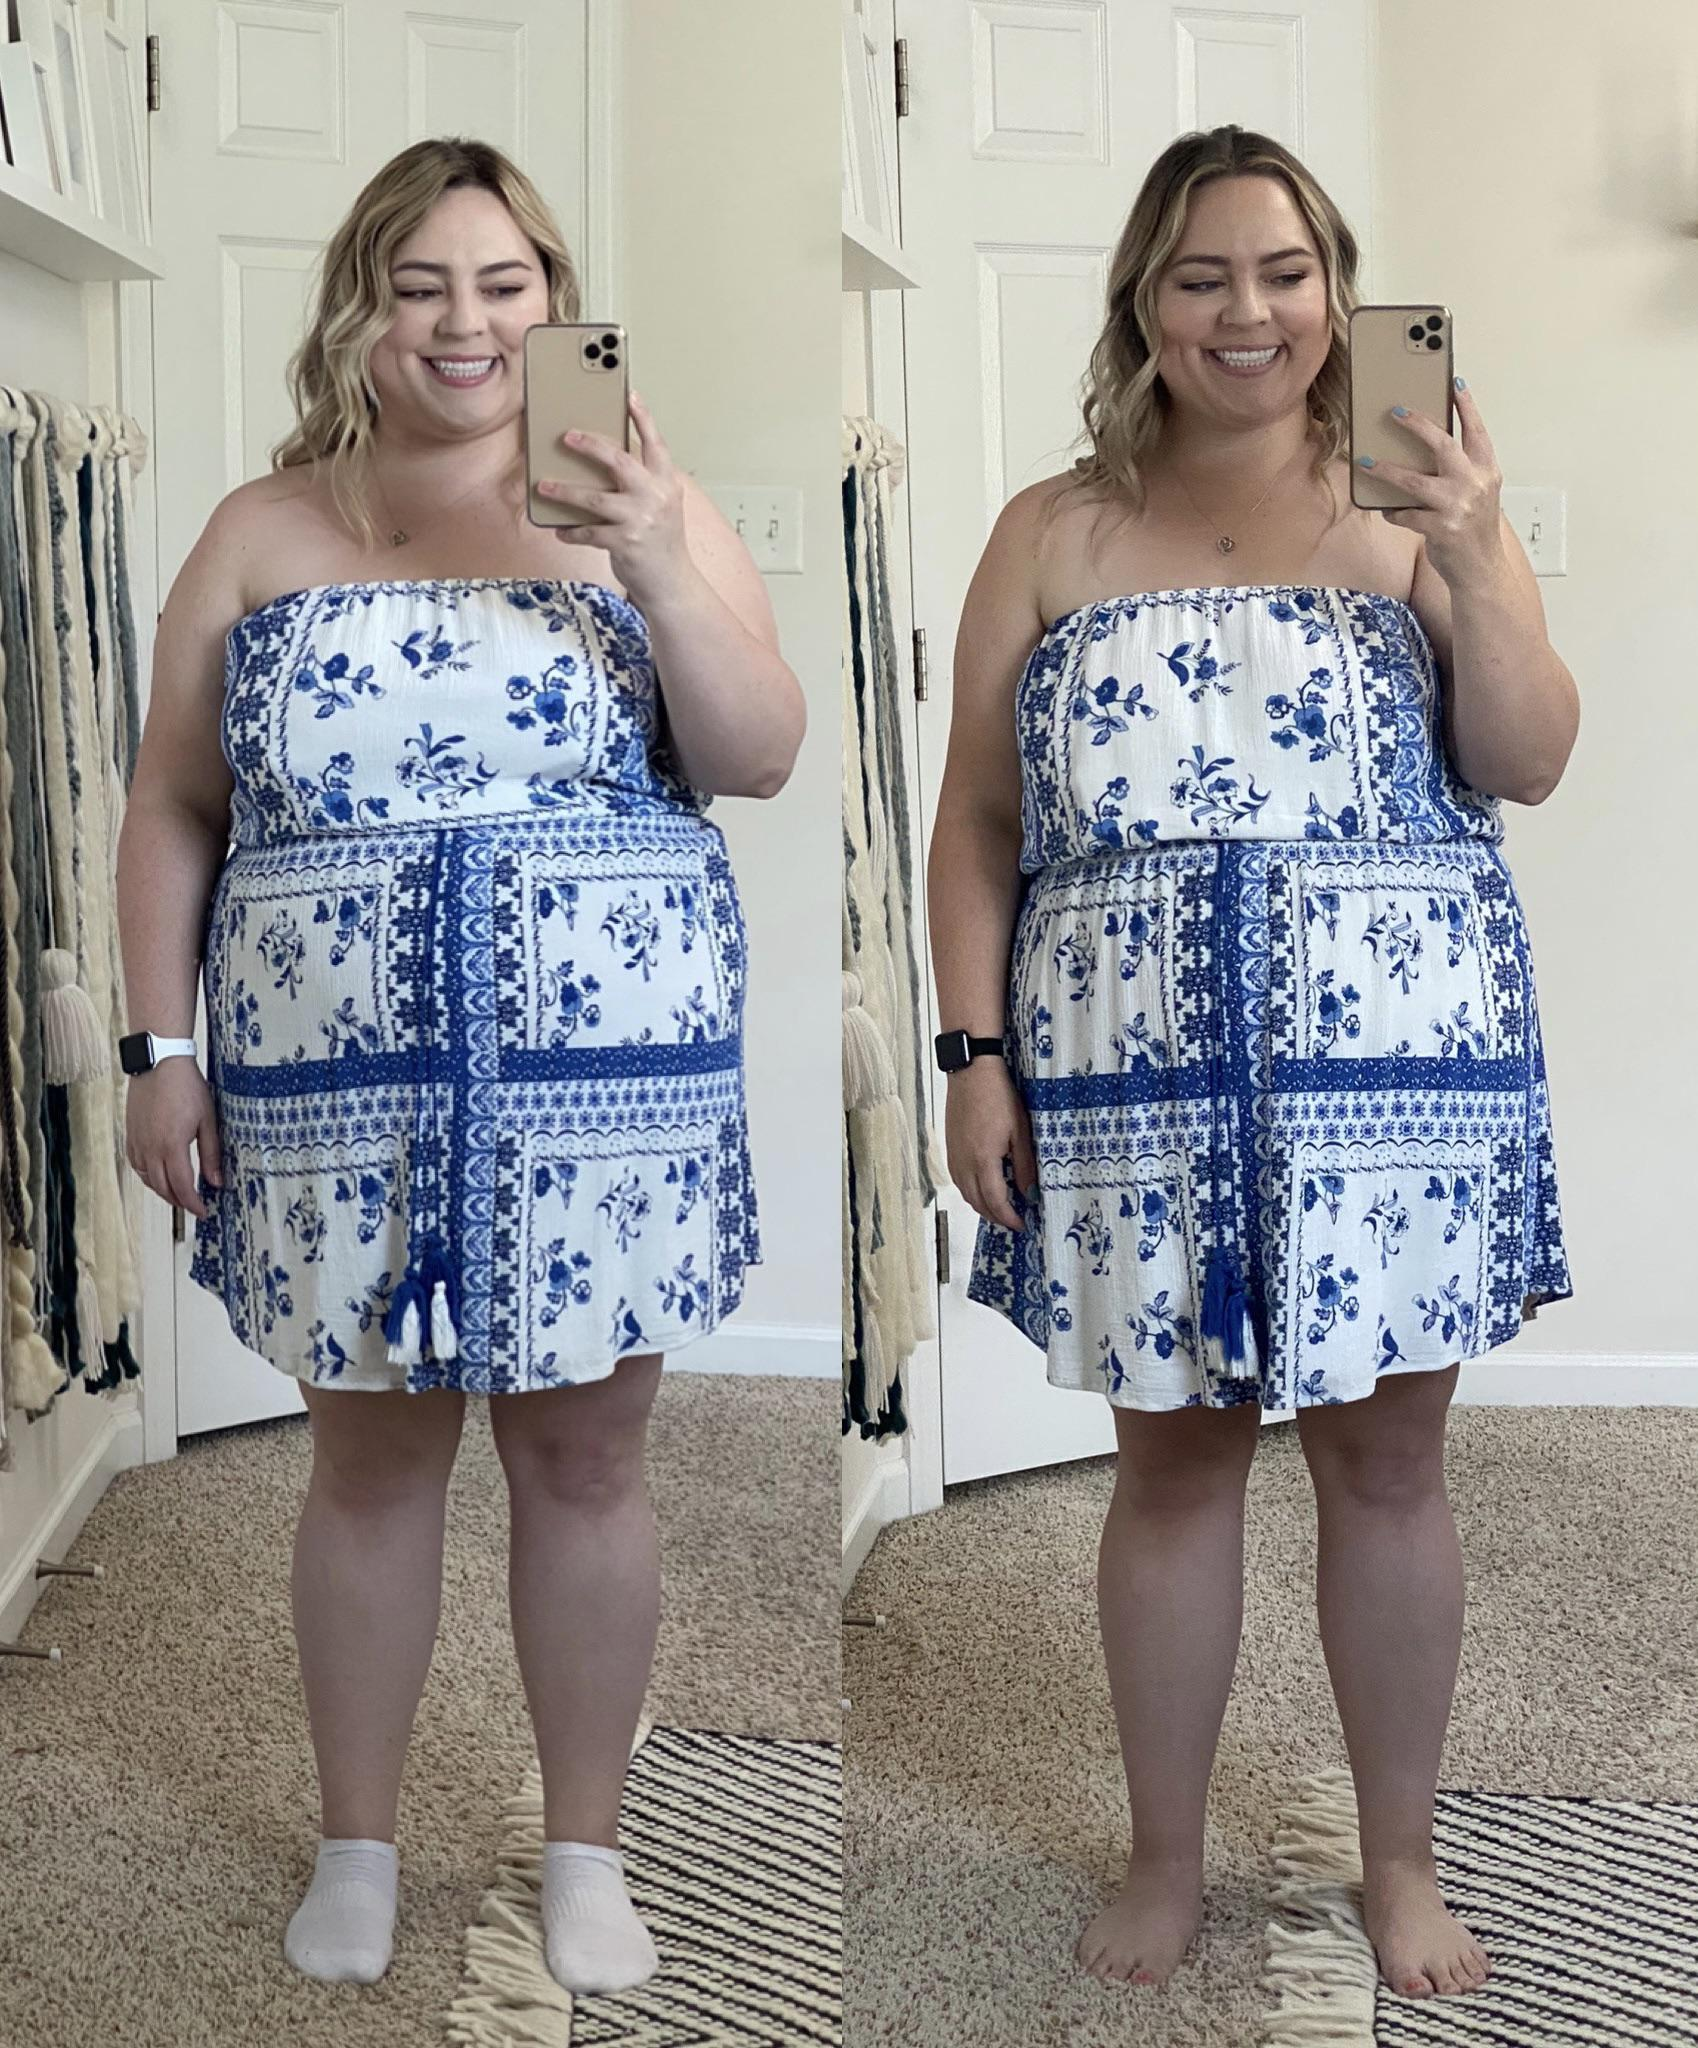 Before and After 32 lbs Weight Loss 5 foot 2 Female 230 lbs to 198 lbs